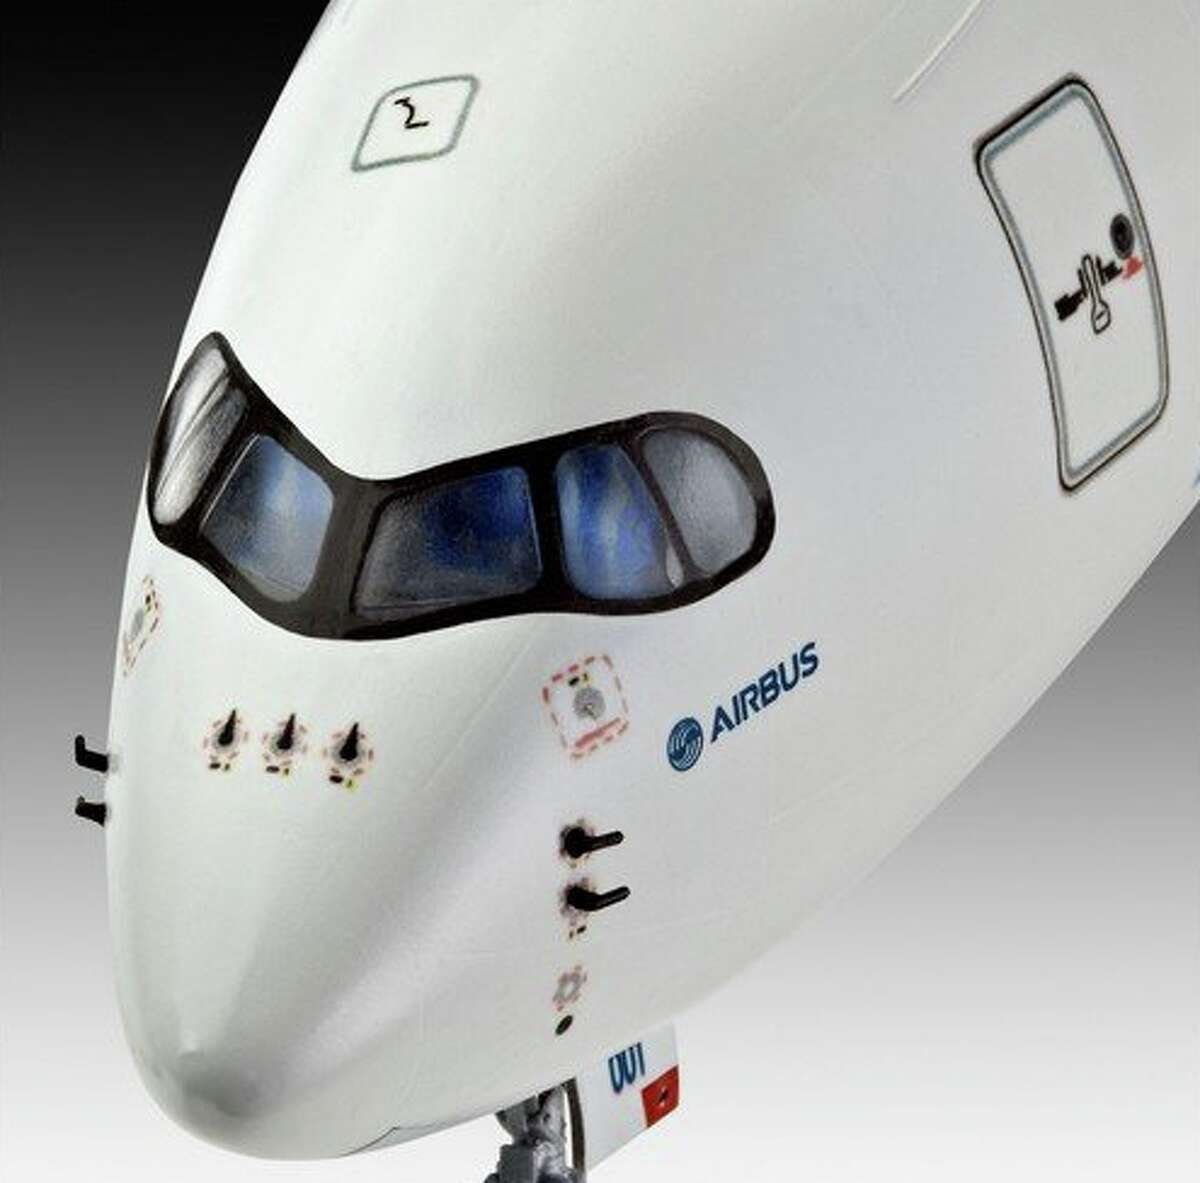 Airbus A350- note the raccoon eyes?